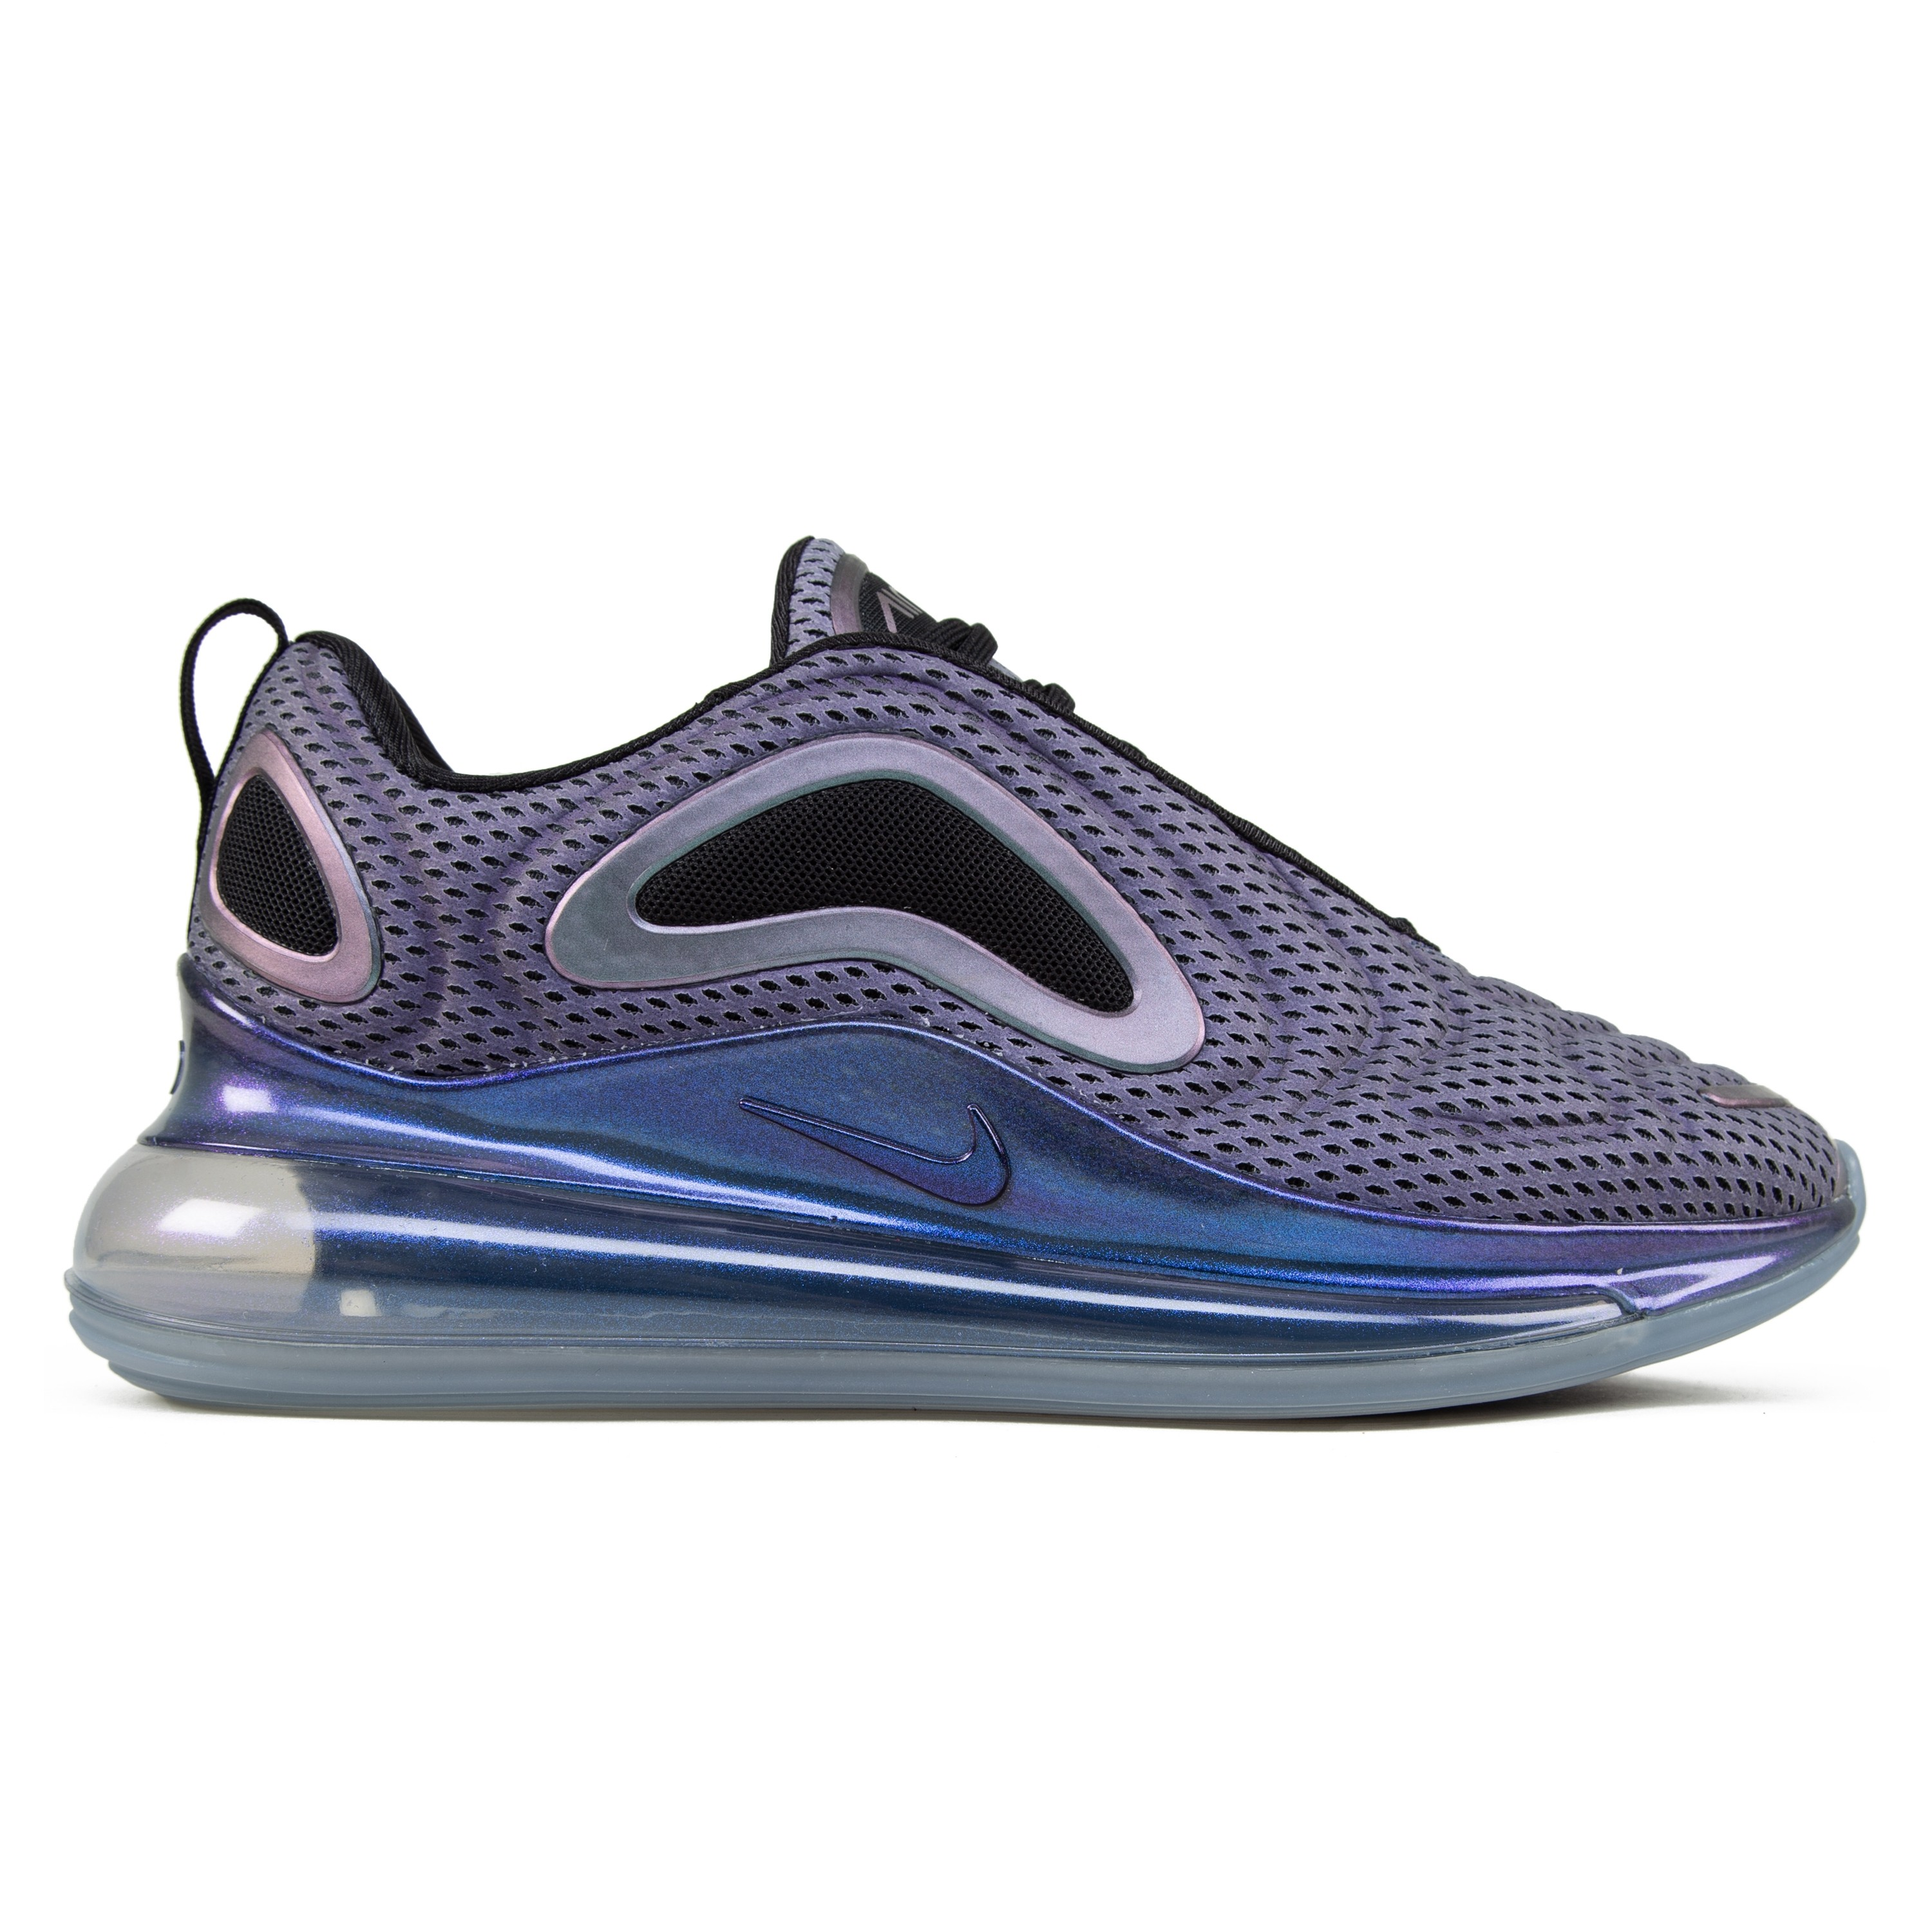 informazioni per 100% originale genuino Nike Air Max 720 'Northern Lights' (Metallic Silver/Black-Metallic Silver)